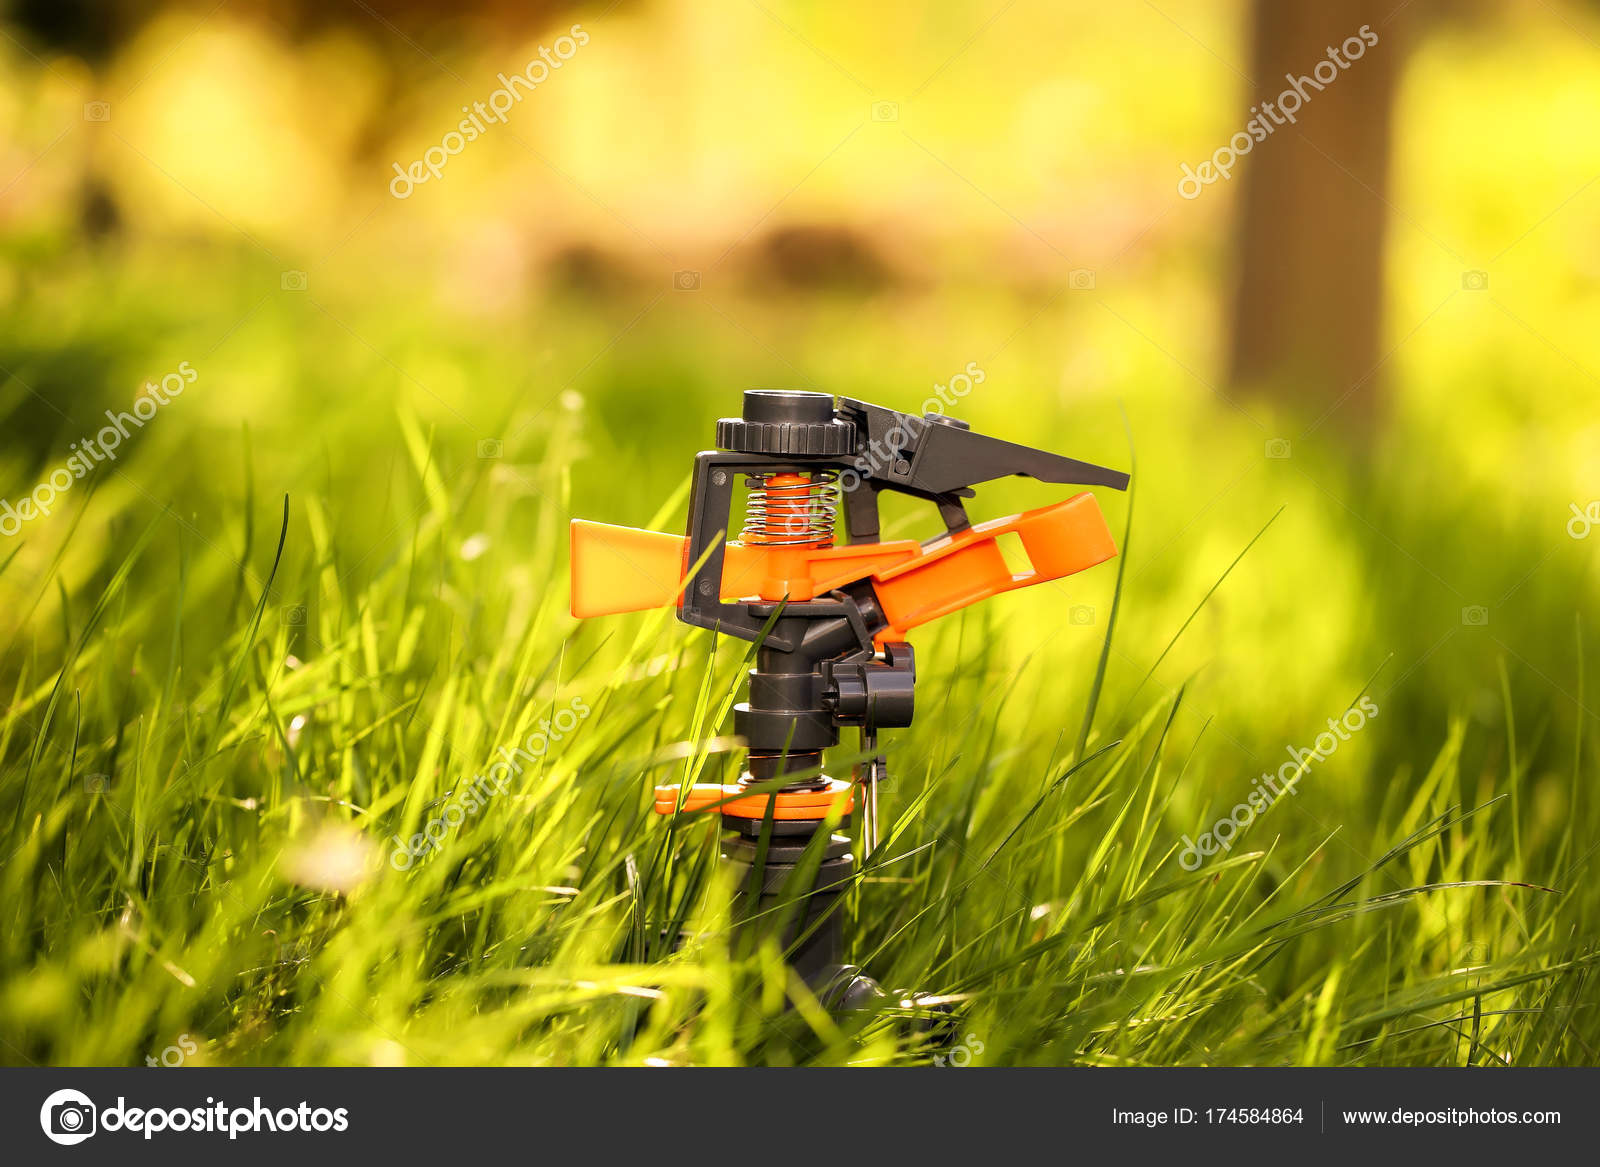 Water Sprinkler In The Garden Copy Space For Text And